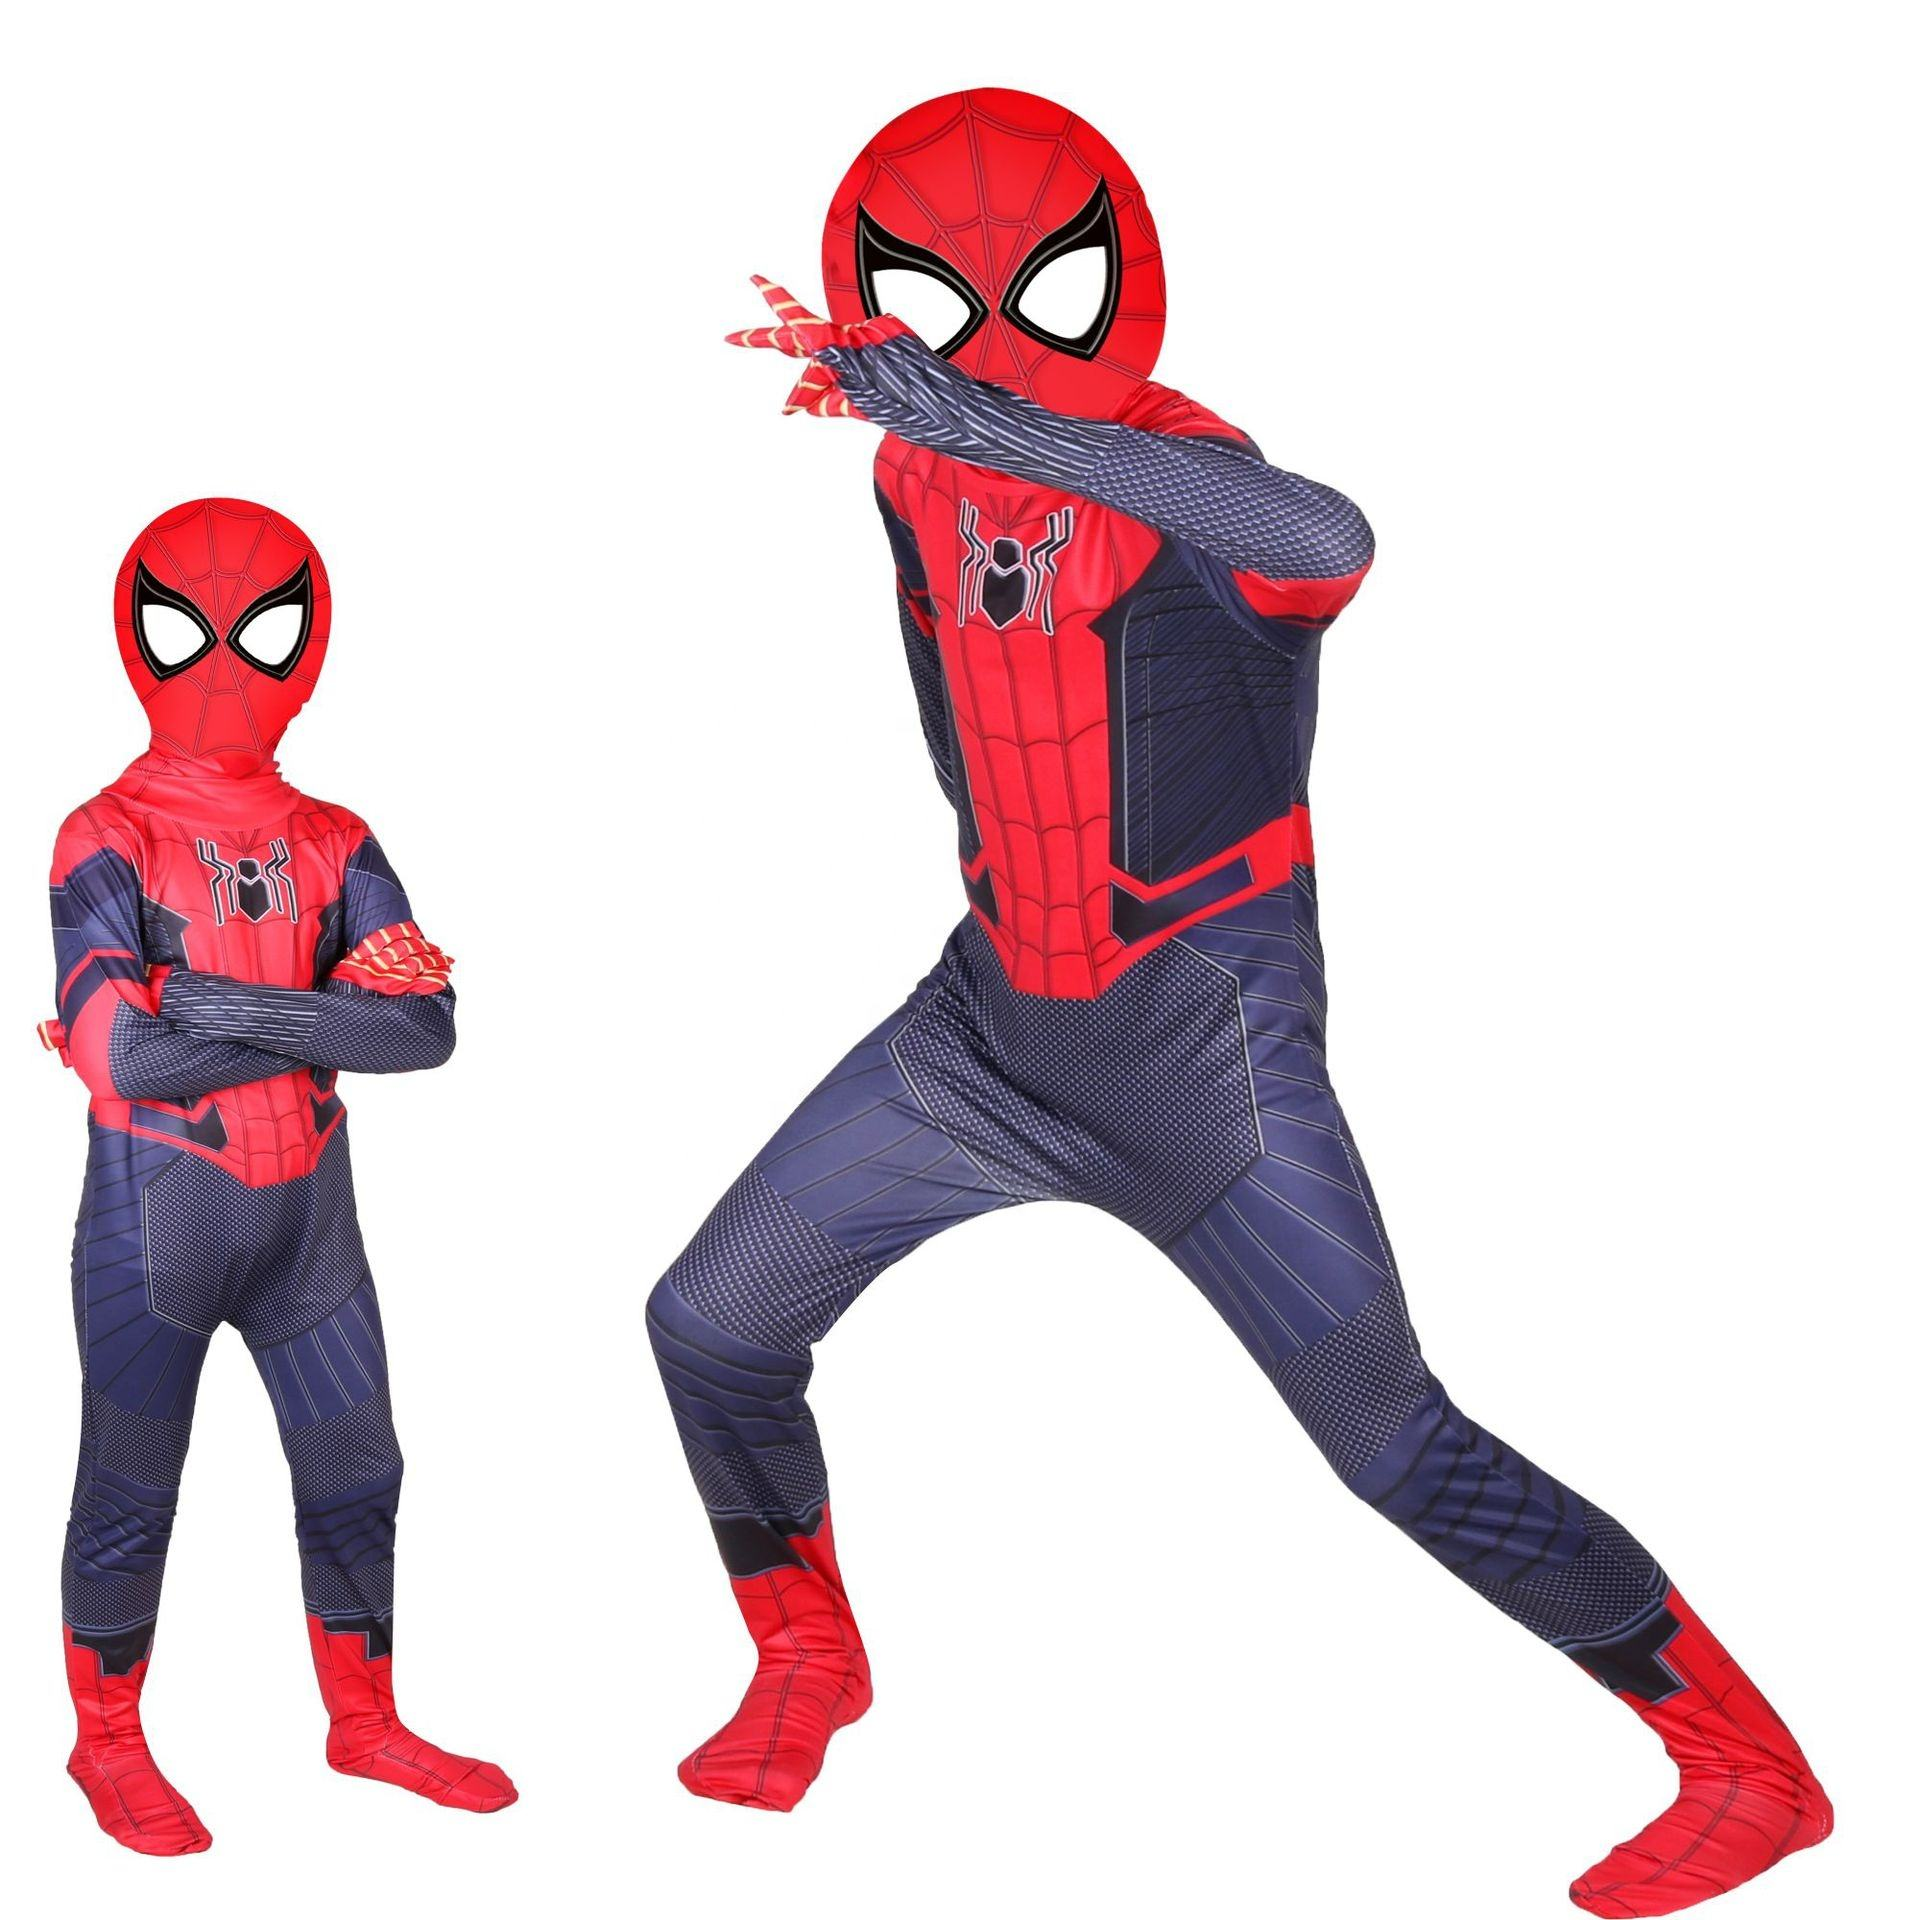 Spiderman Child Costume Xmas Halloween Party hat+shirt+trouser 3pieces Polyester